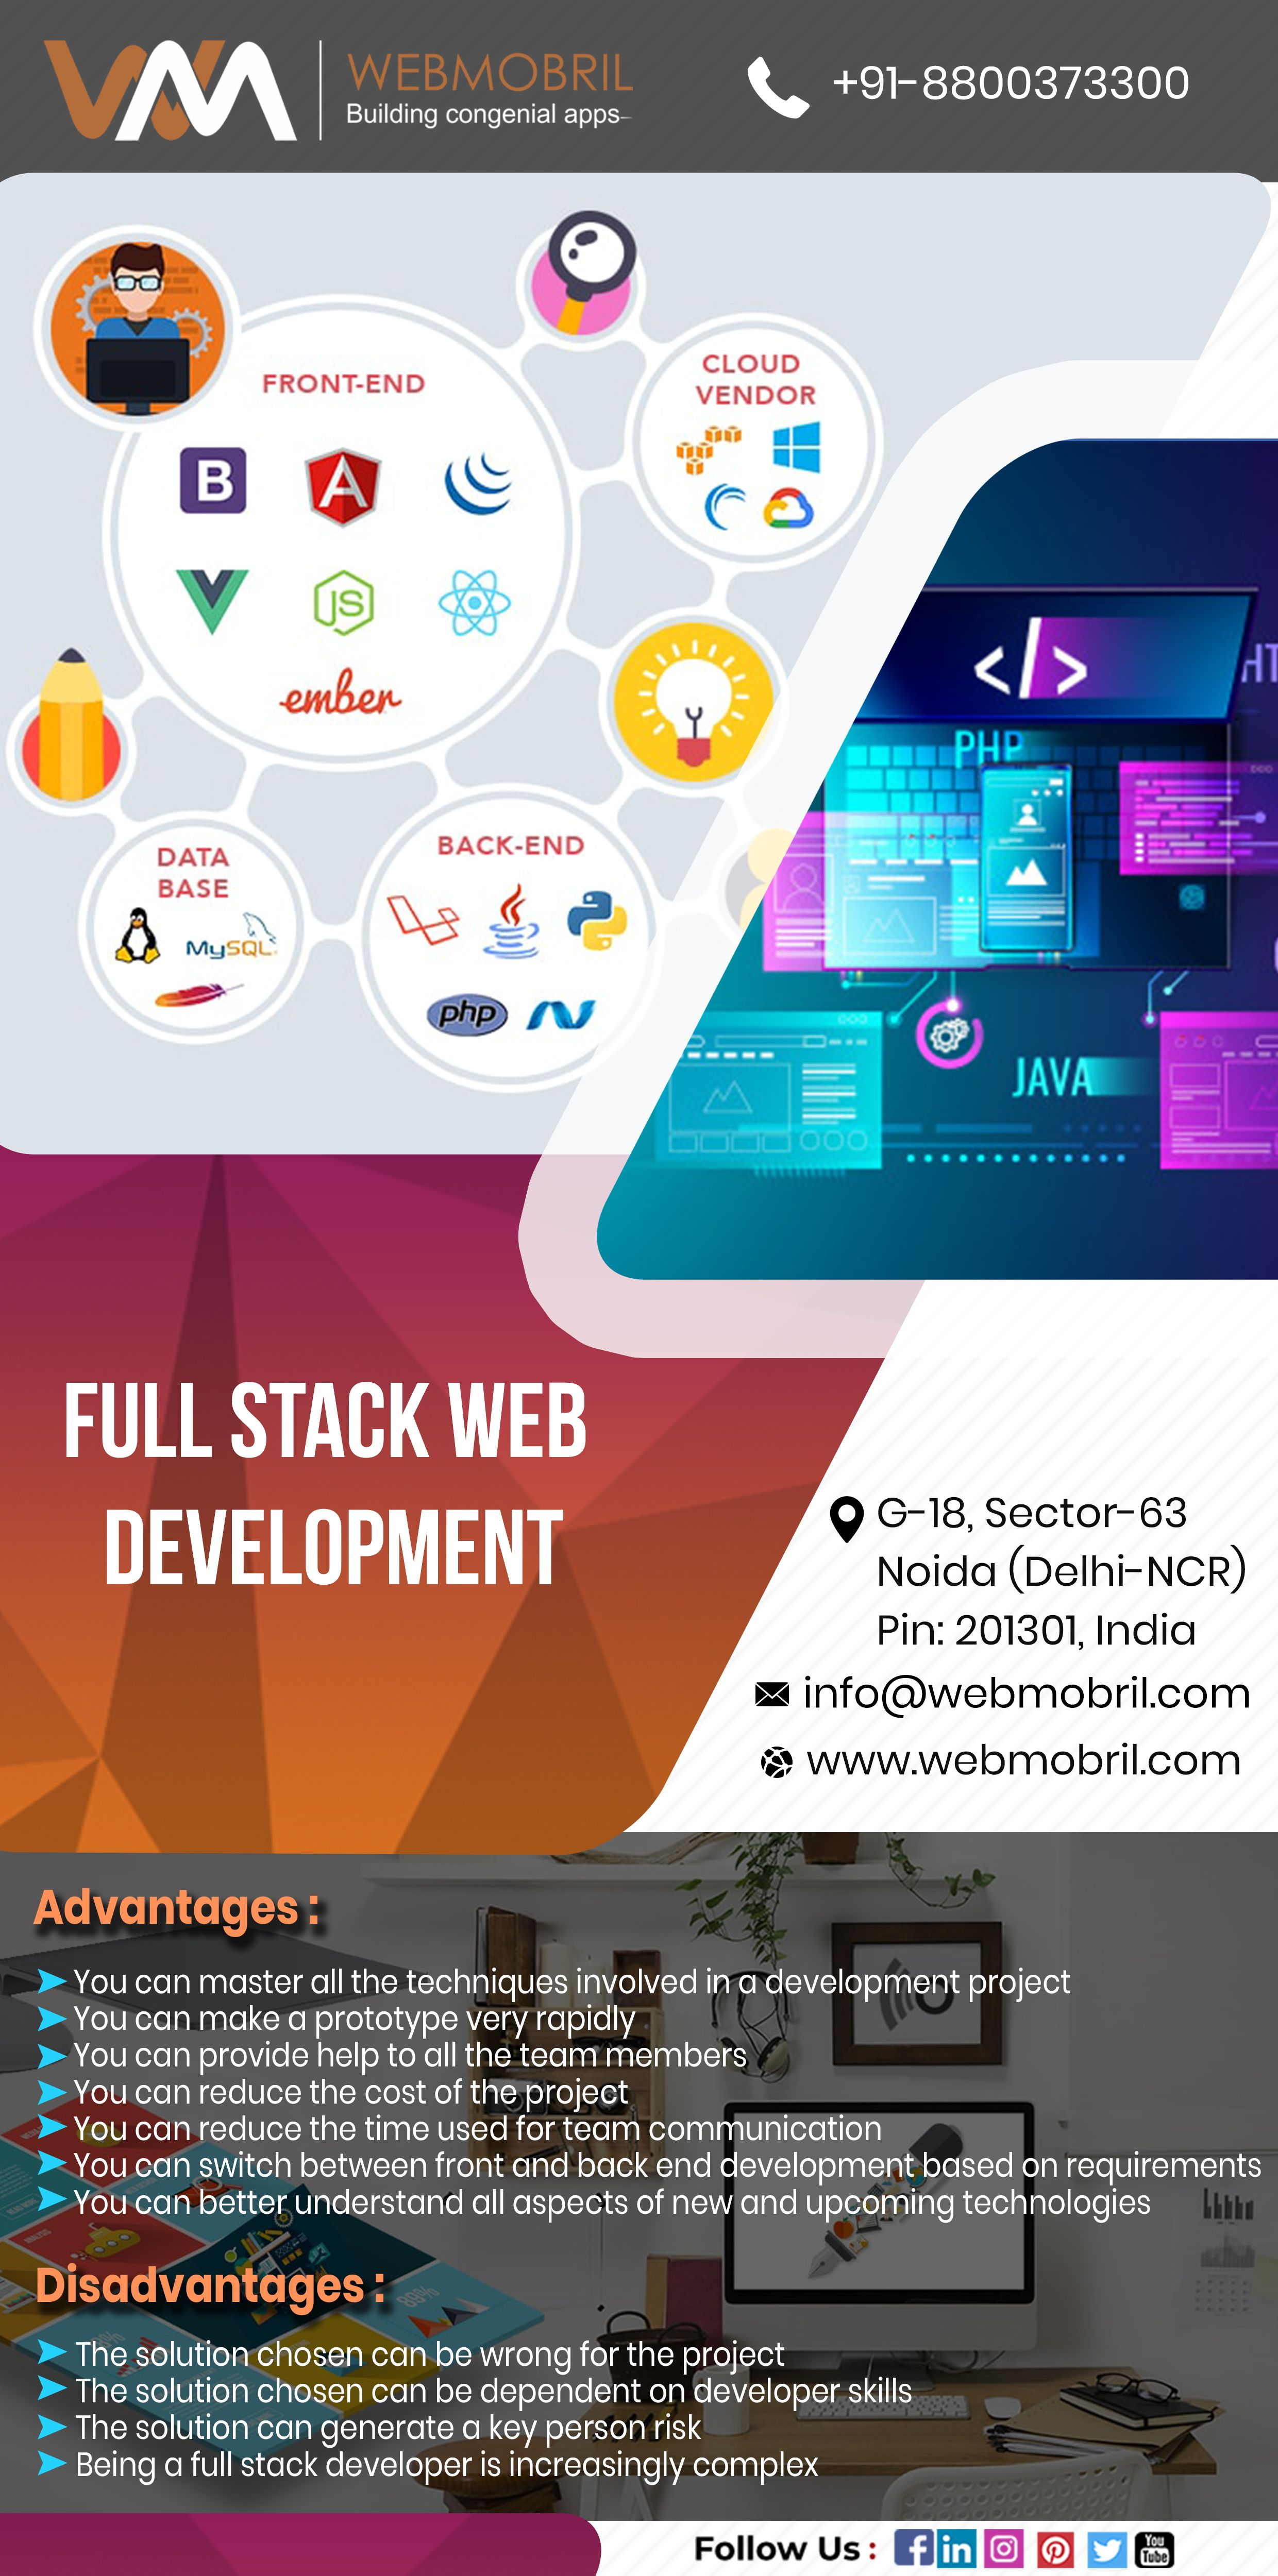 Top app developers companies in india Useful